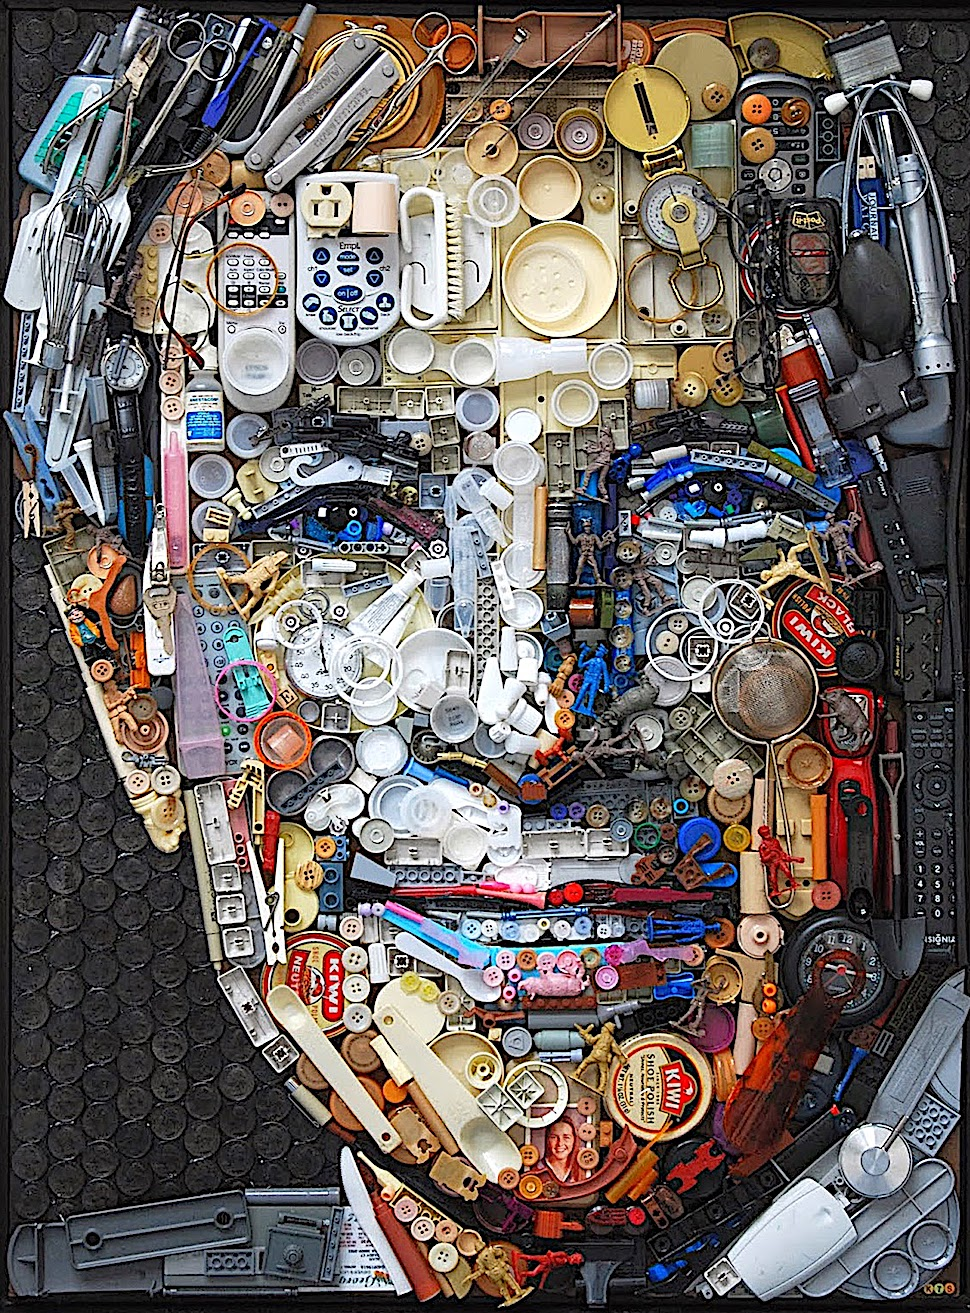 Kirkland Smith art, a smiling man made of many small objects